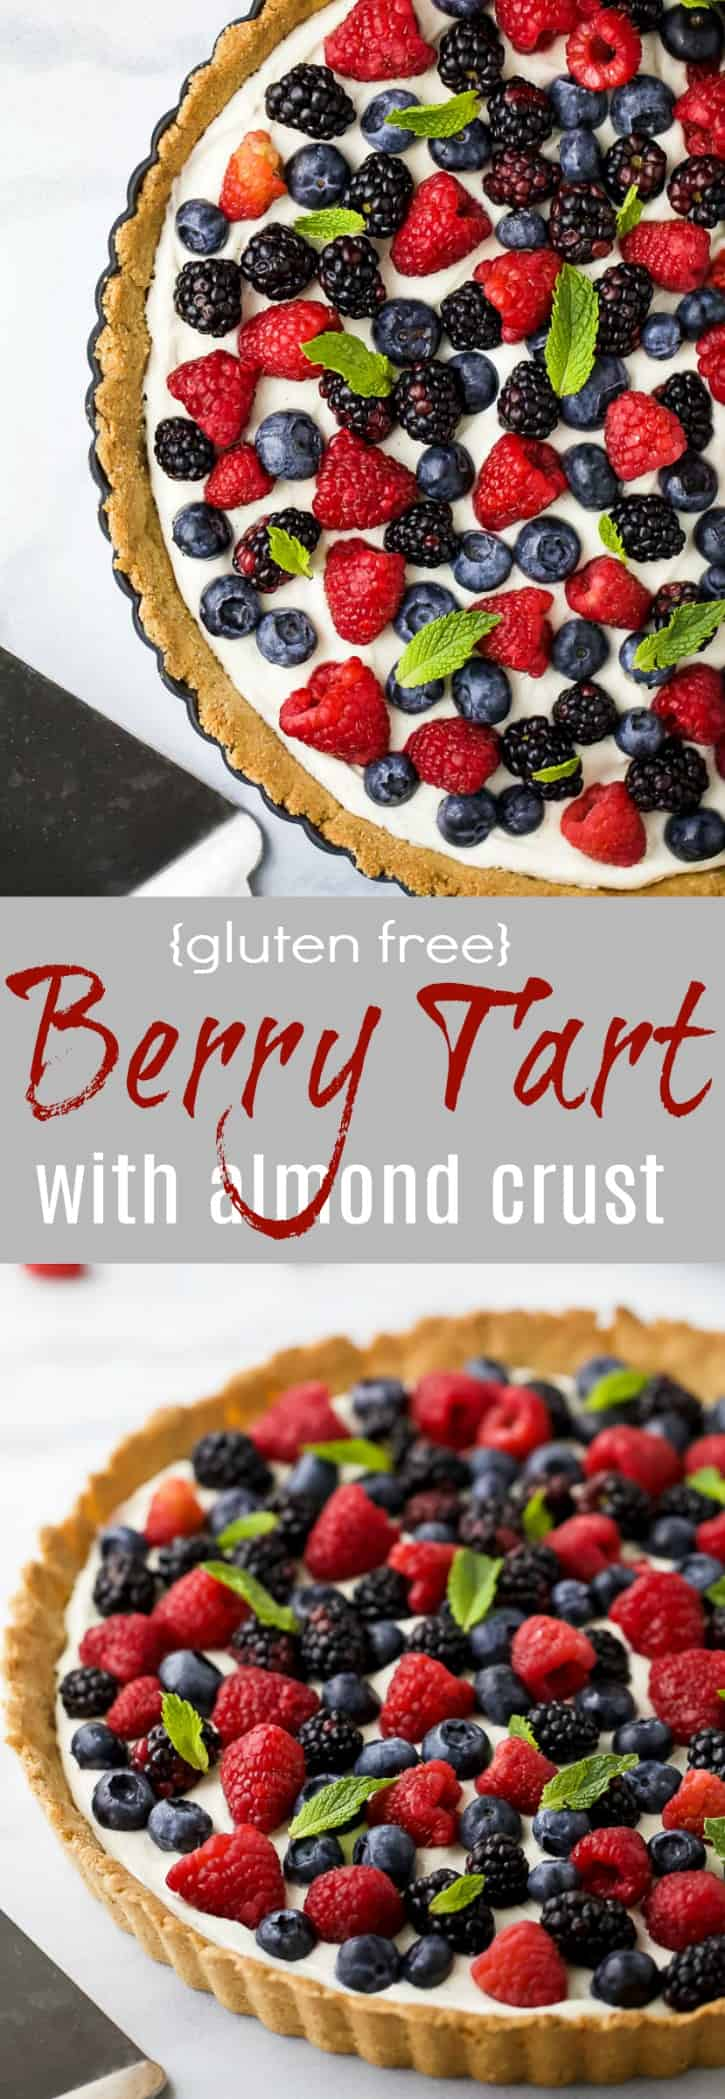 Title Image for Gluten Free Berry Tart with Almond Crust